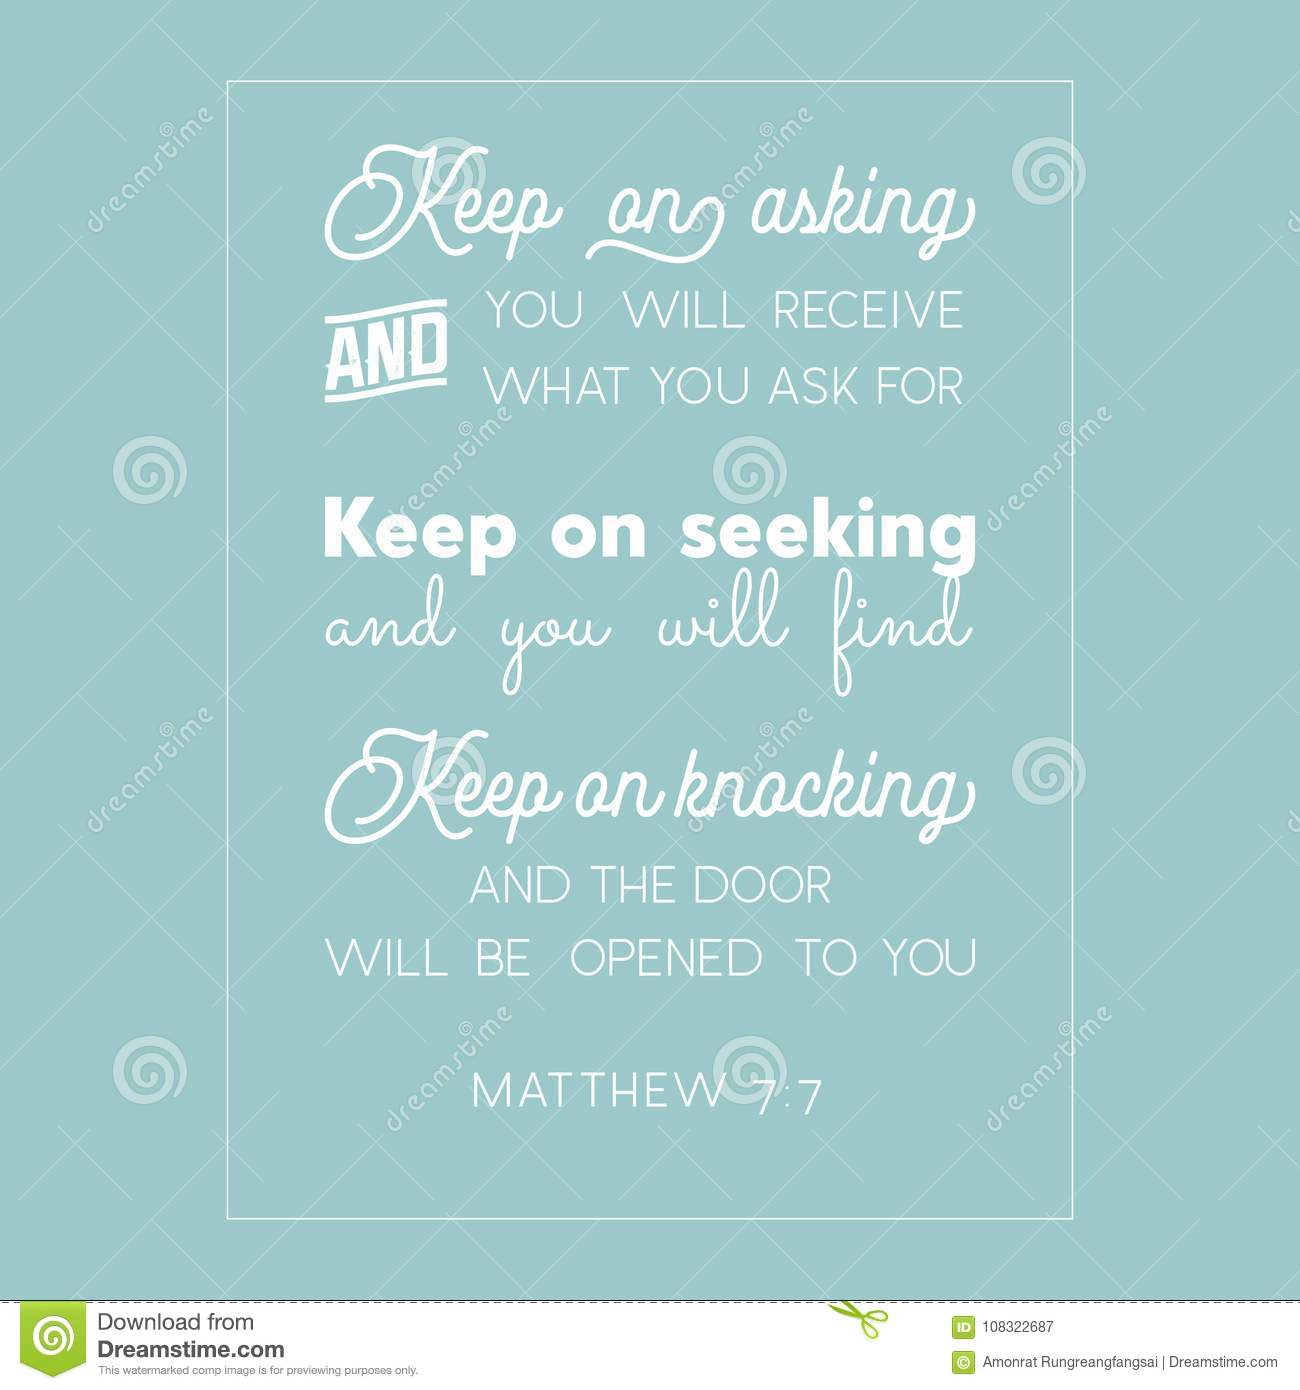 Citation de bible de Matthew